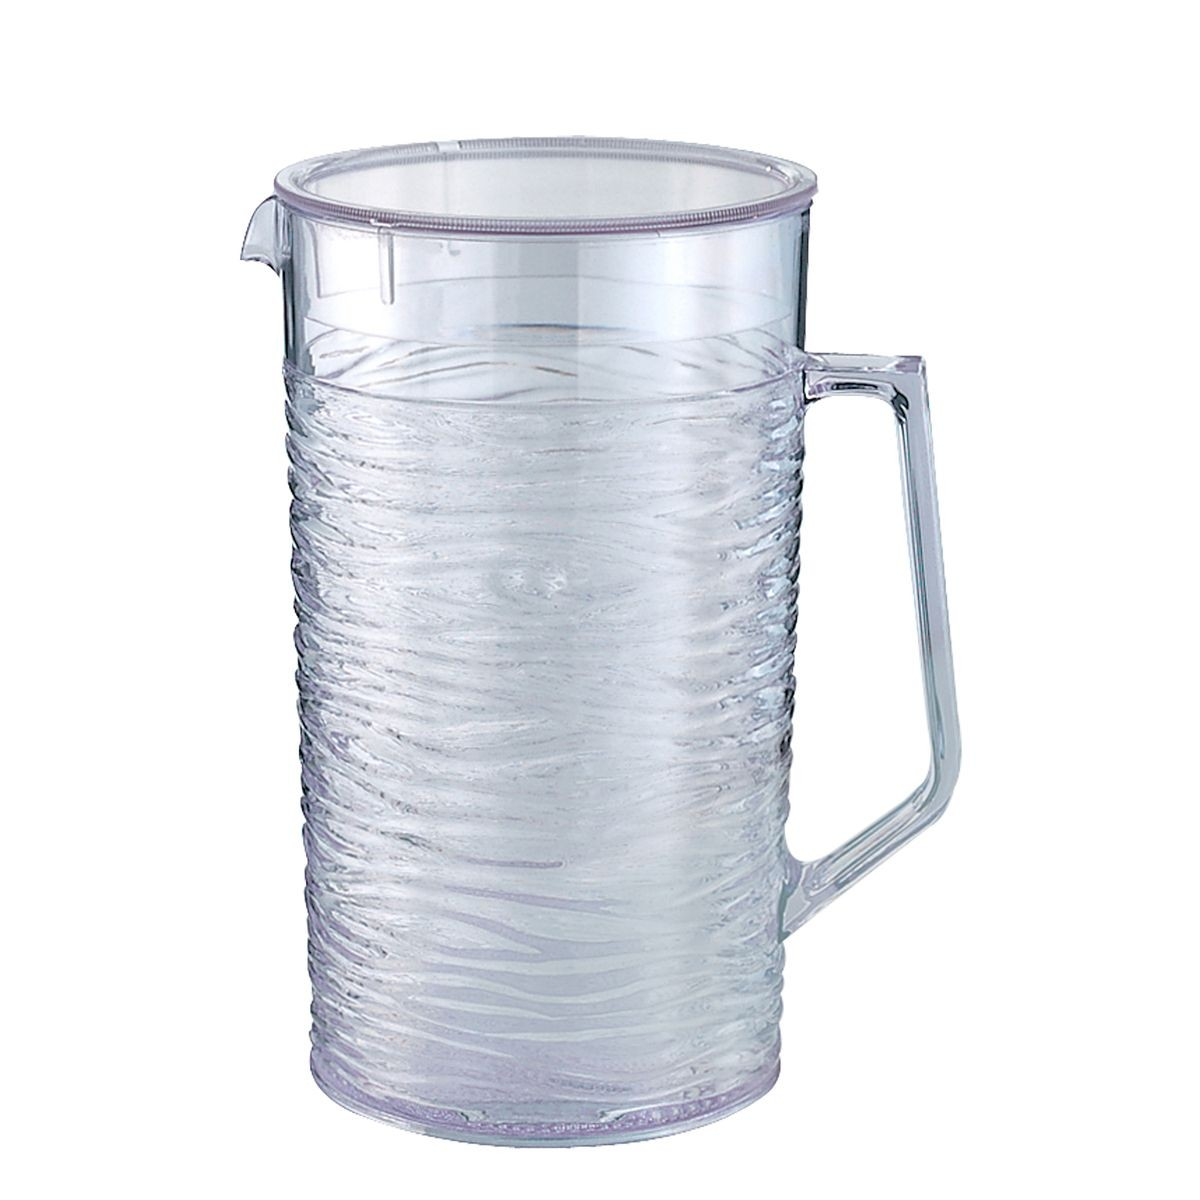 Service Ideas SI2LITCL Sculptured Ice Pitcher with Lid 2 Liter (67.6 oz.)